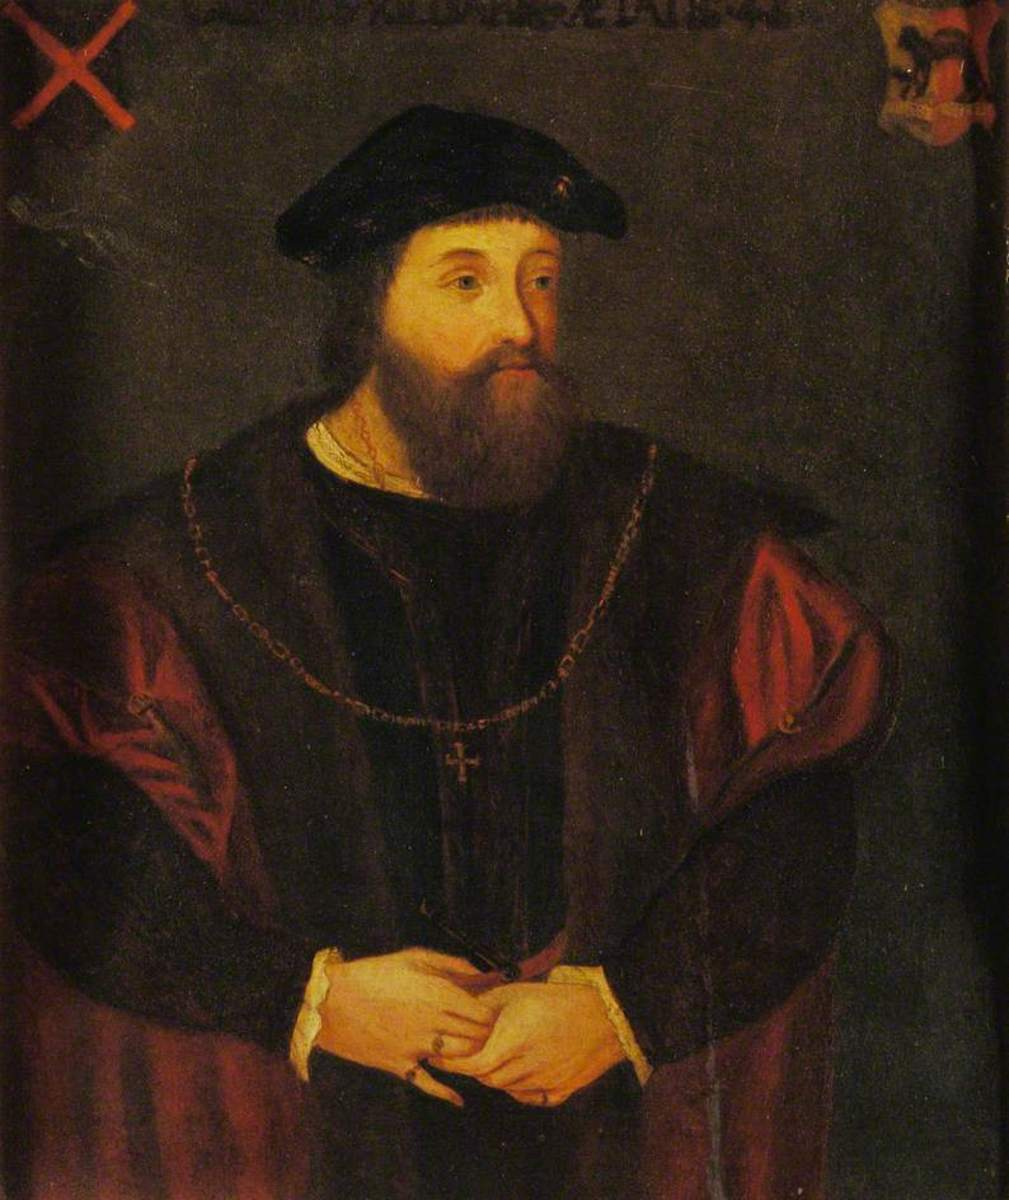 Gerald FitzGerald, 9th Earl of Kildare, January 1530